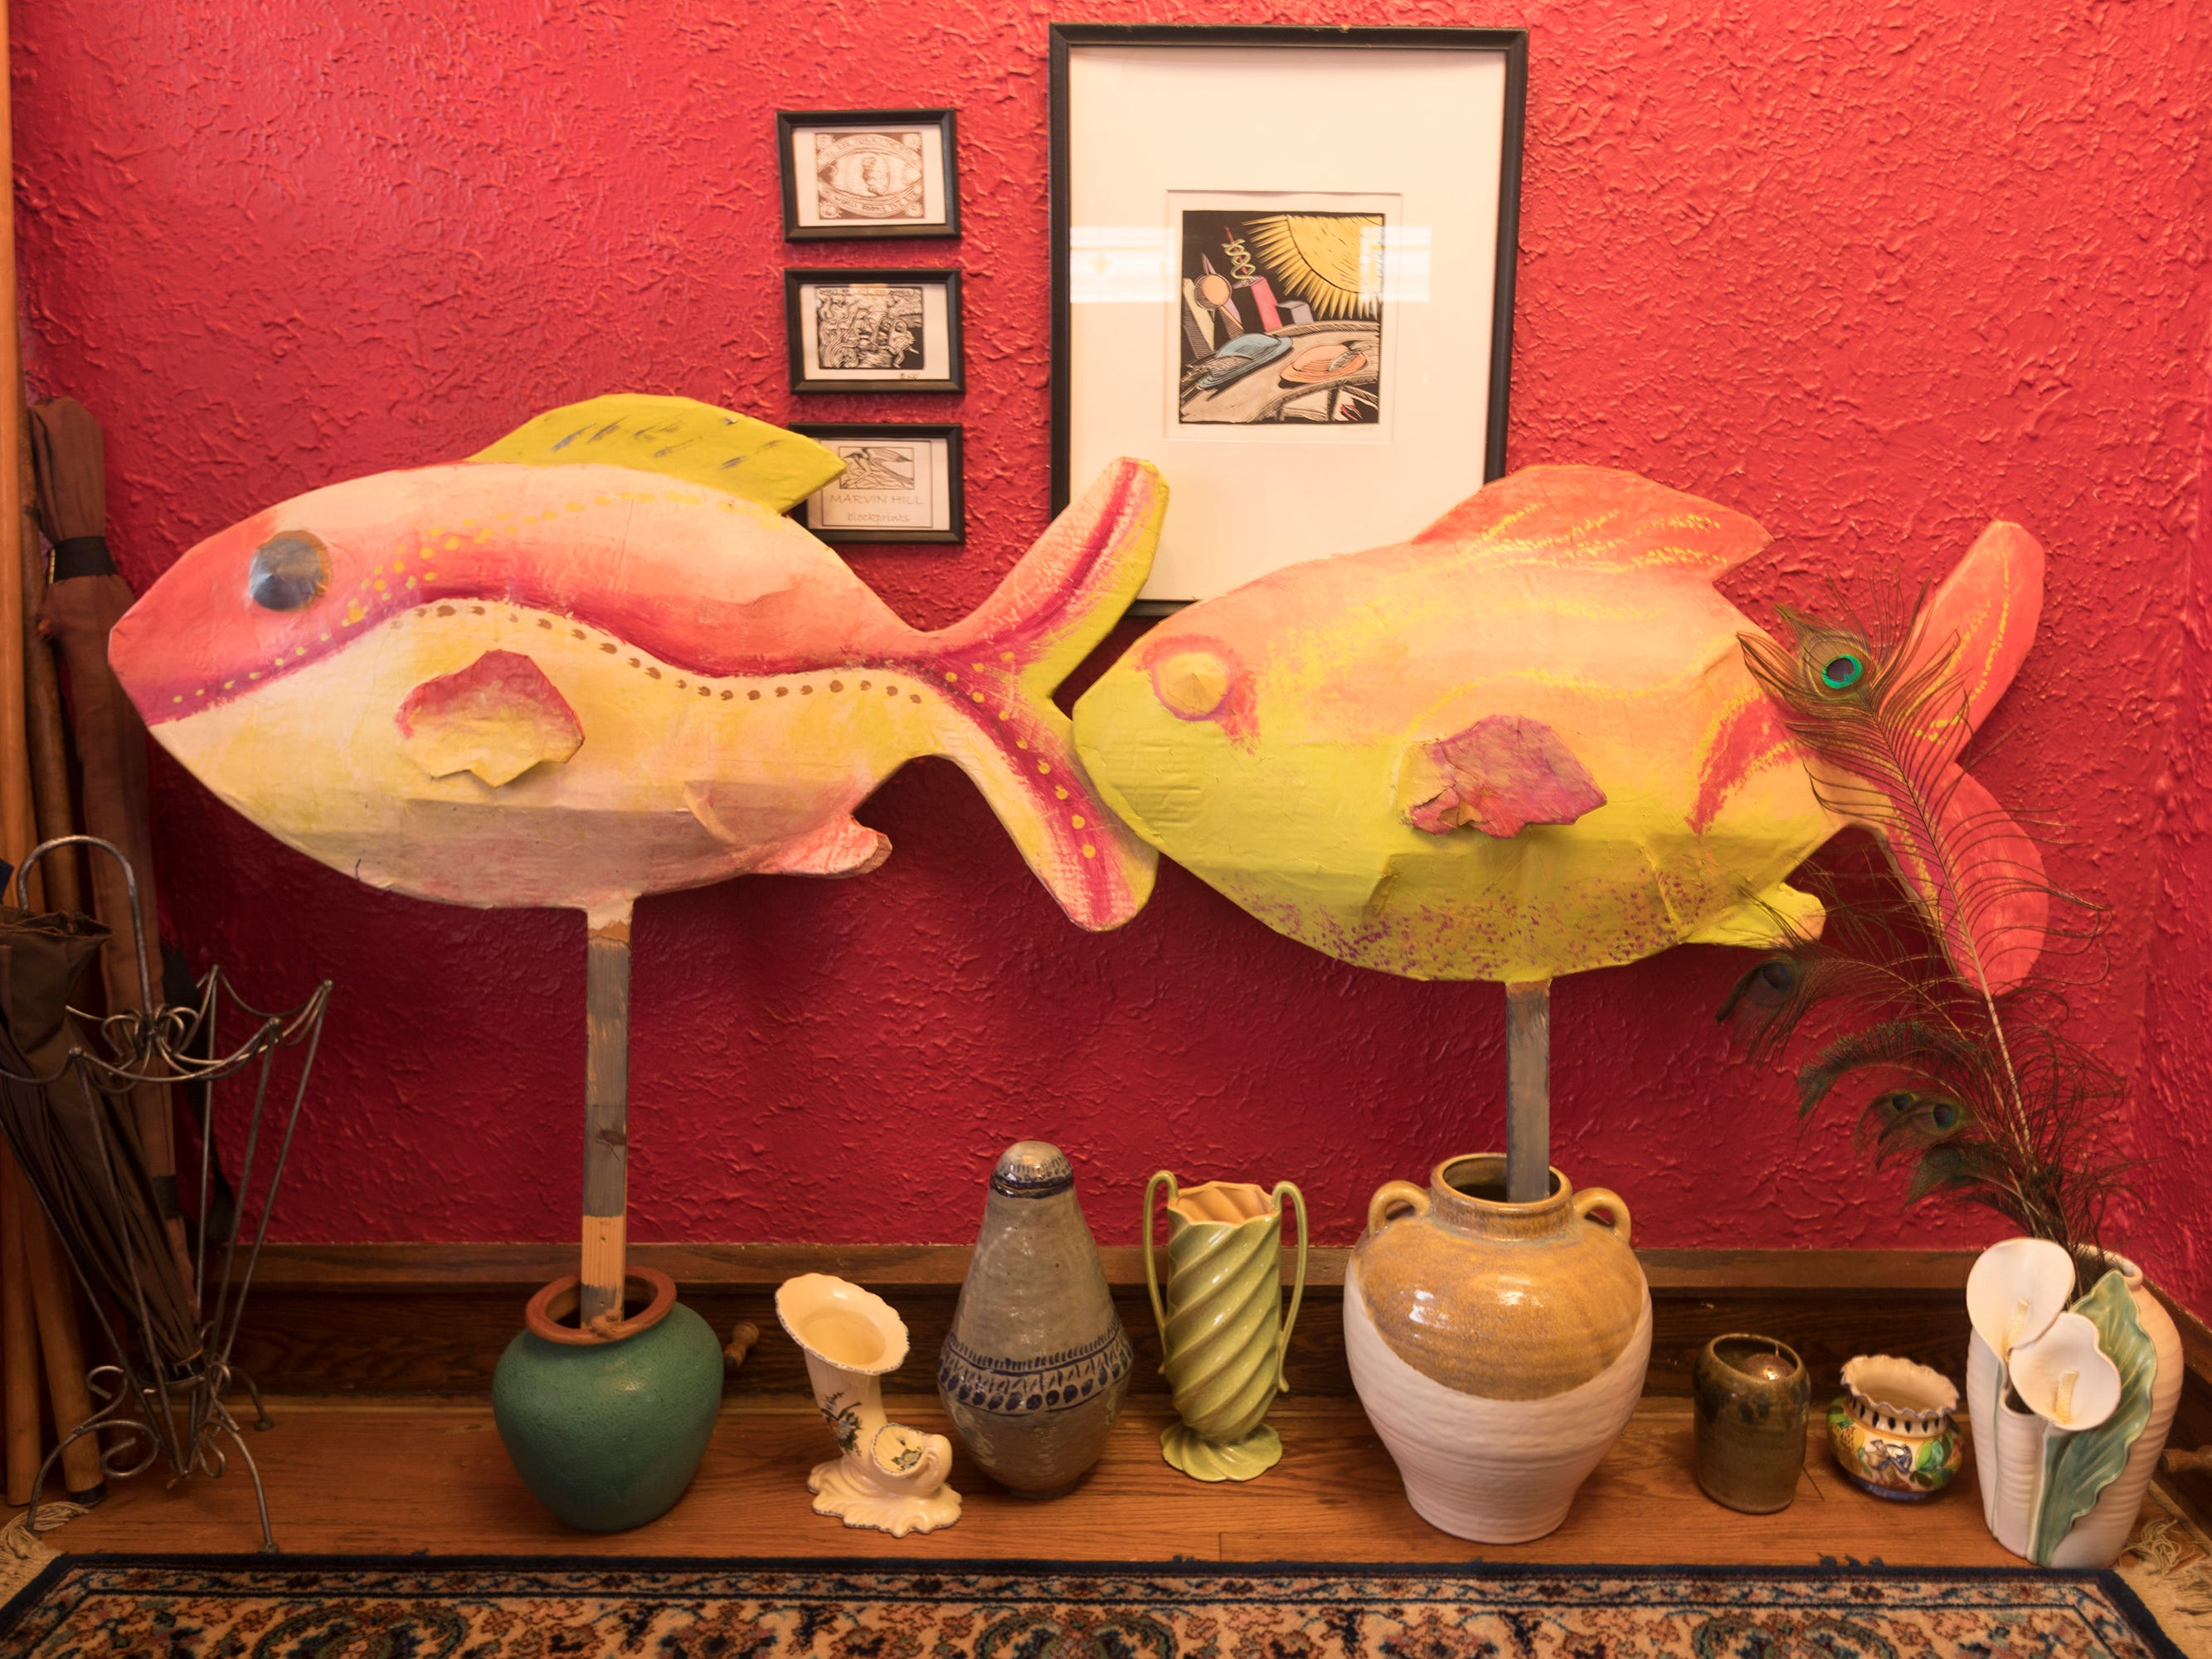 Papier-mache fish created by the homeowner greet visitors in the entryway.